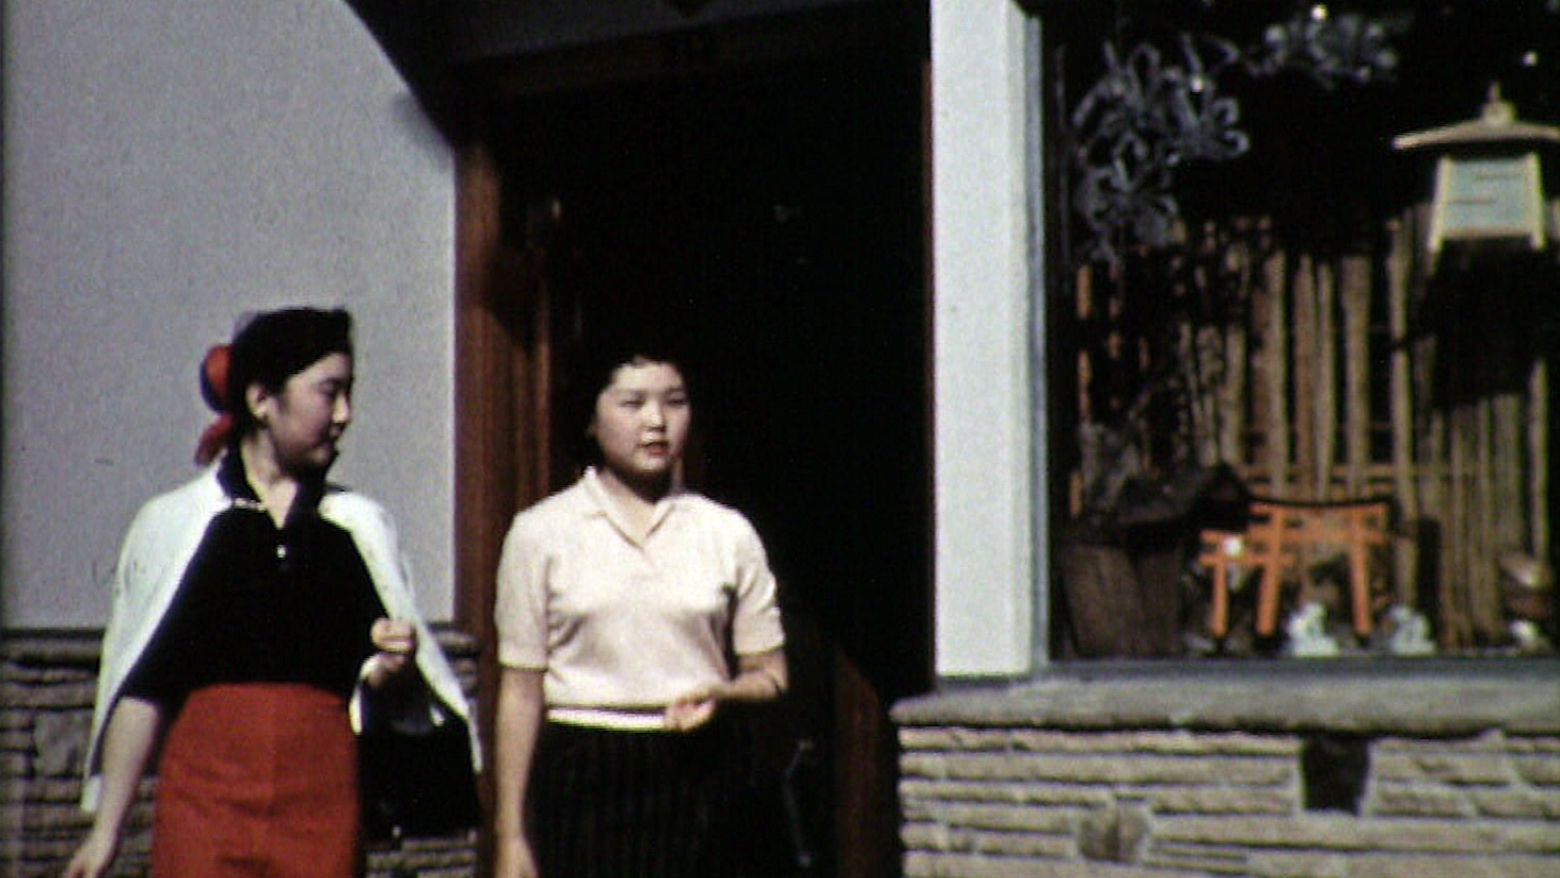 Still from the film The Challenge (1957) showing two young girls walking